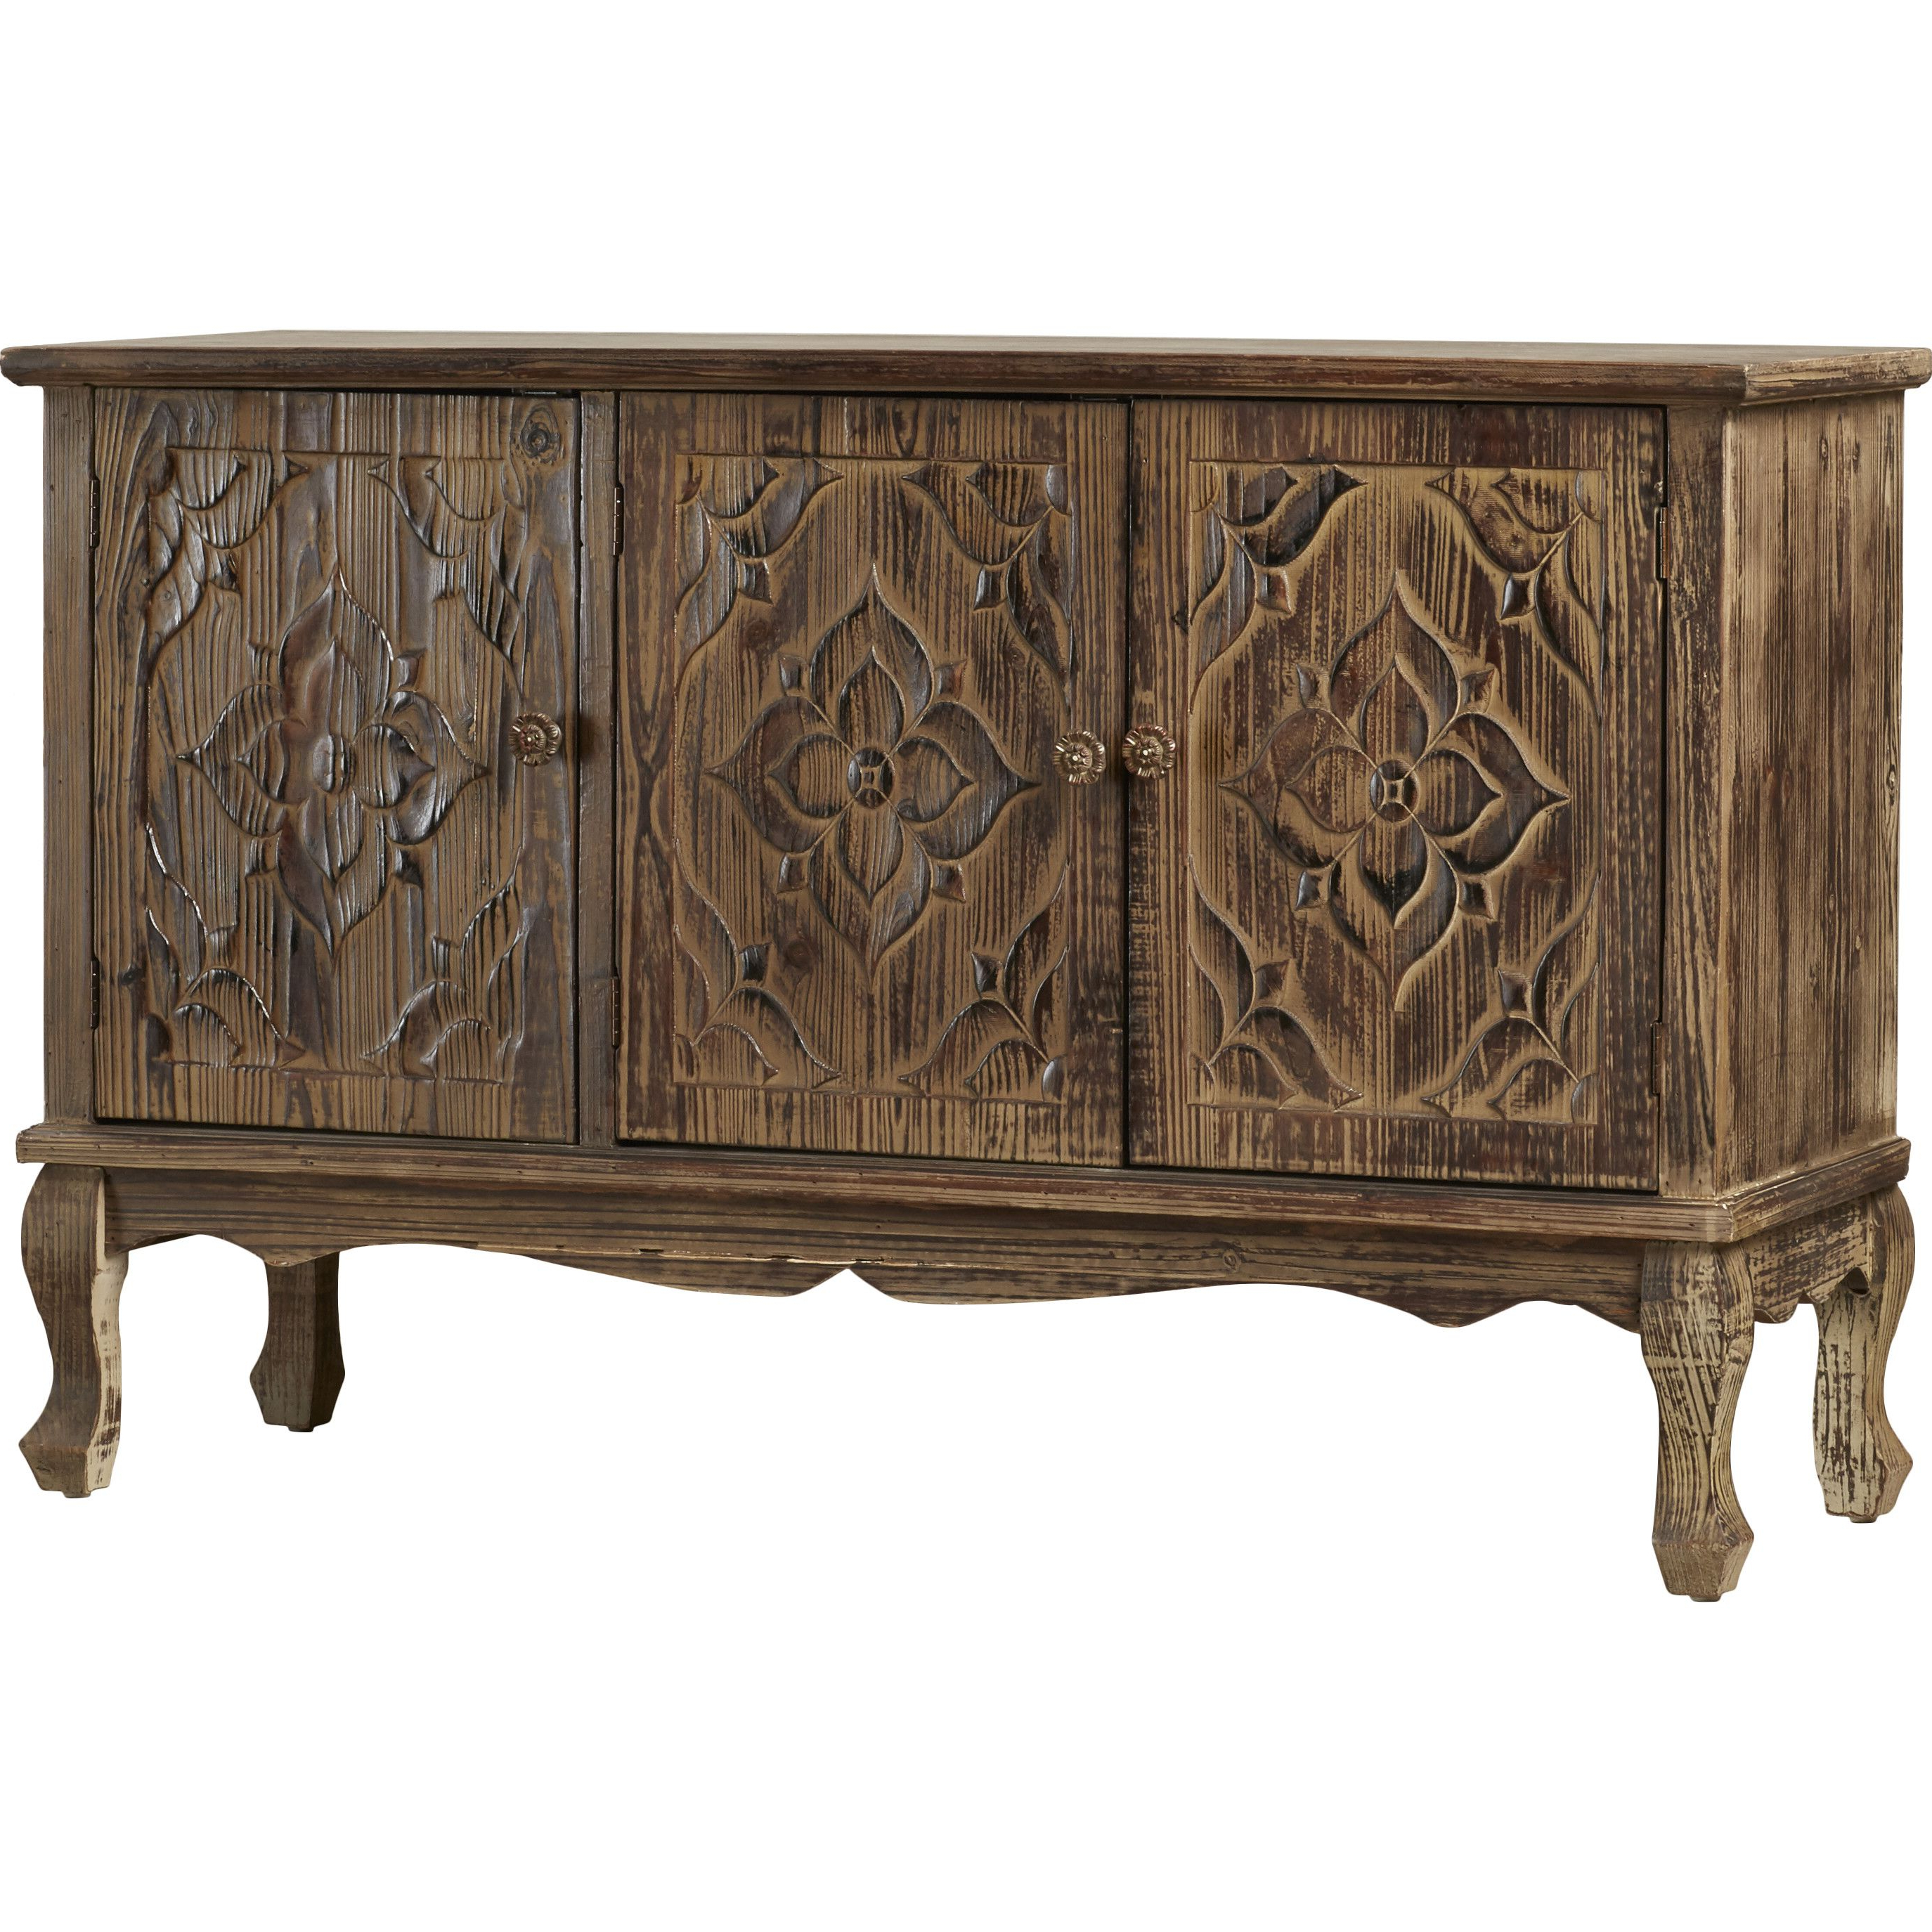 Bungalow Rose Censier 3 Door Credenza | Console Tables For Mauzy Sideboards (View 3 of 20)